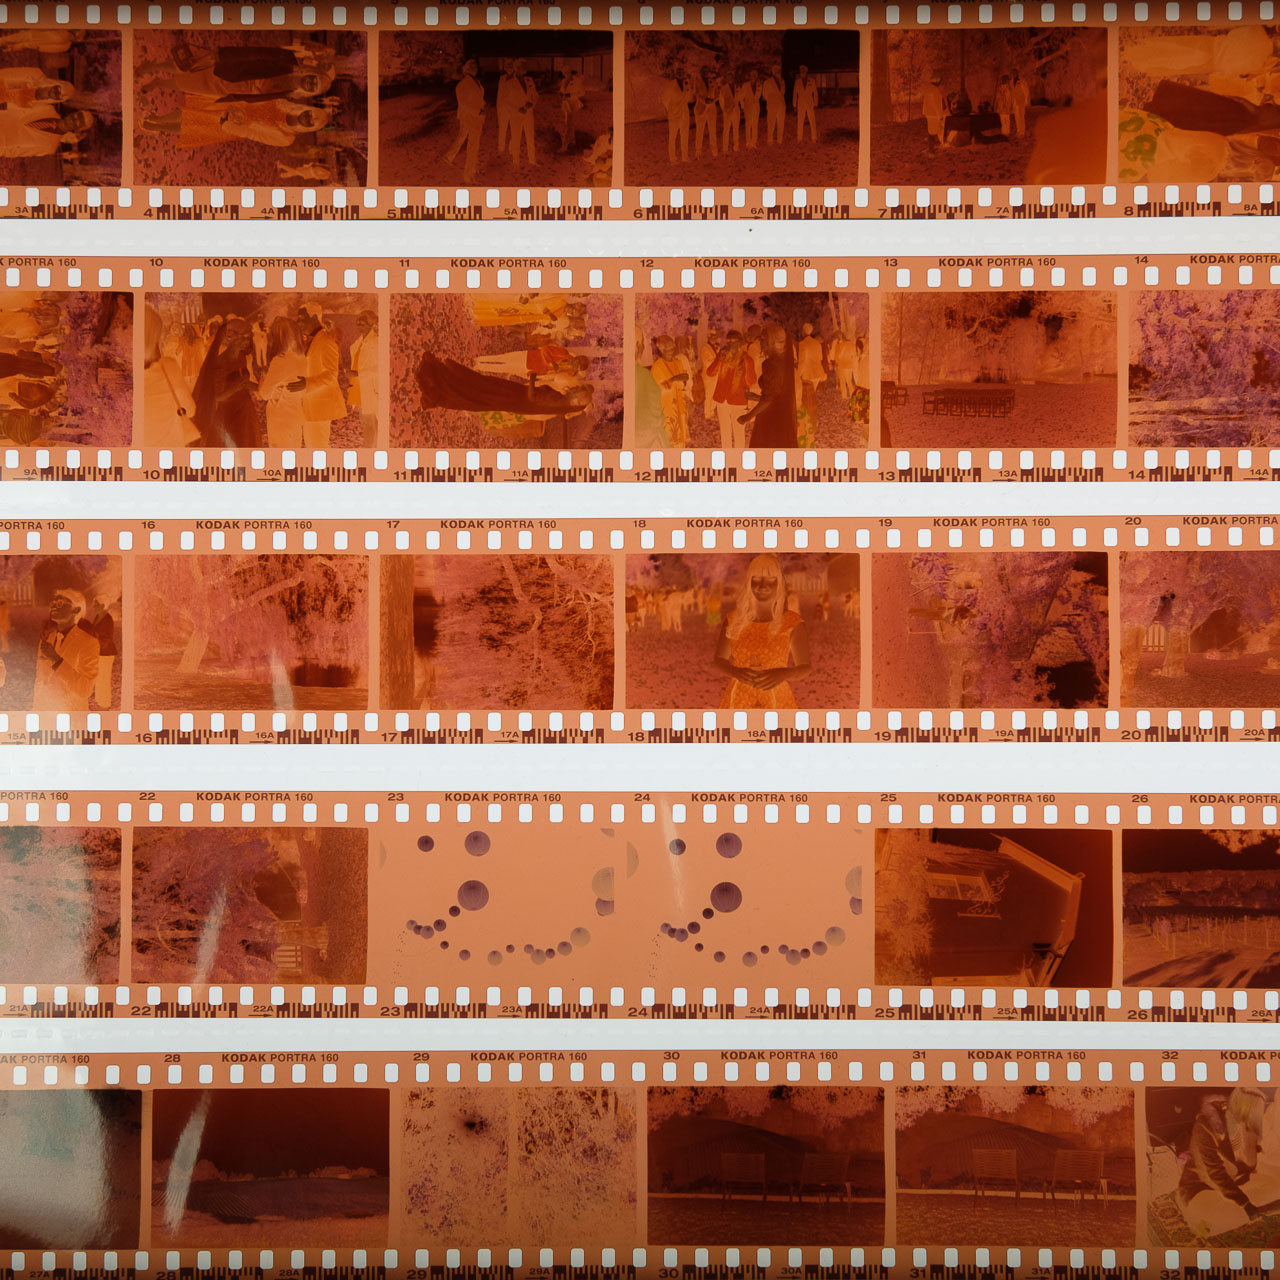 Colour Neg Film